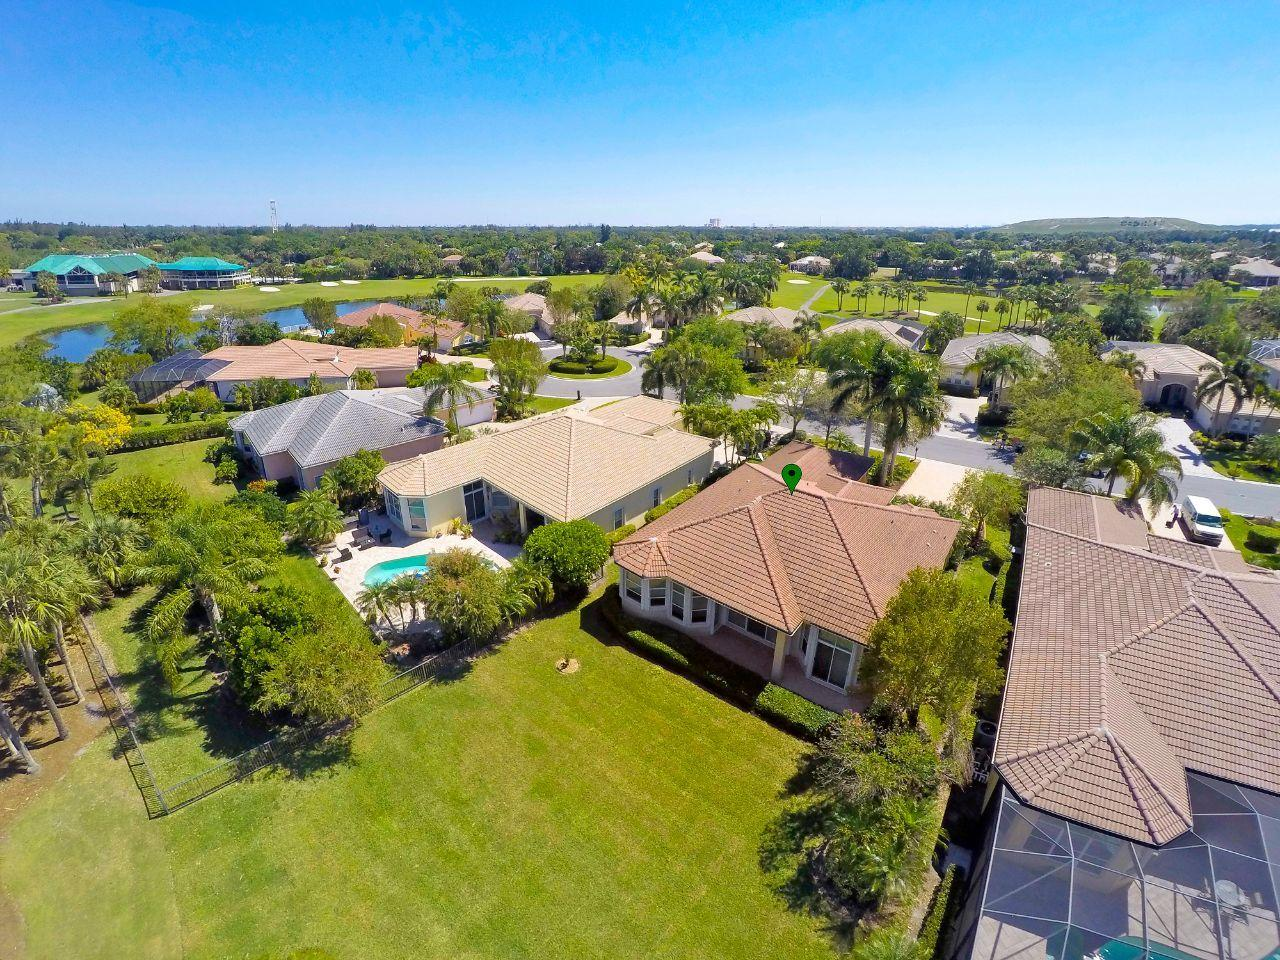 7887 Preserve Drive, West Palm Beach, Florida 33412, 2 Bedrooms Bedrooms, ,2.1 BathroomsBathrooms,A,Single family,Preserve,RX-10477473